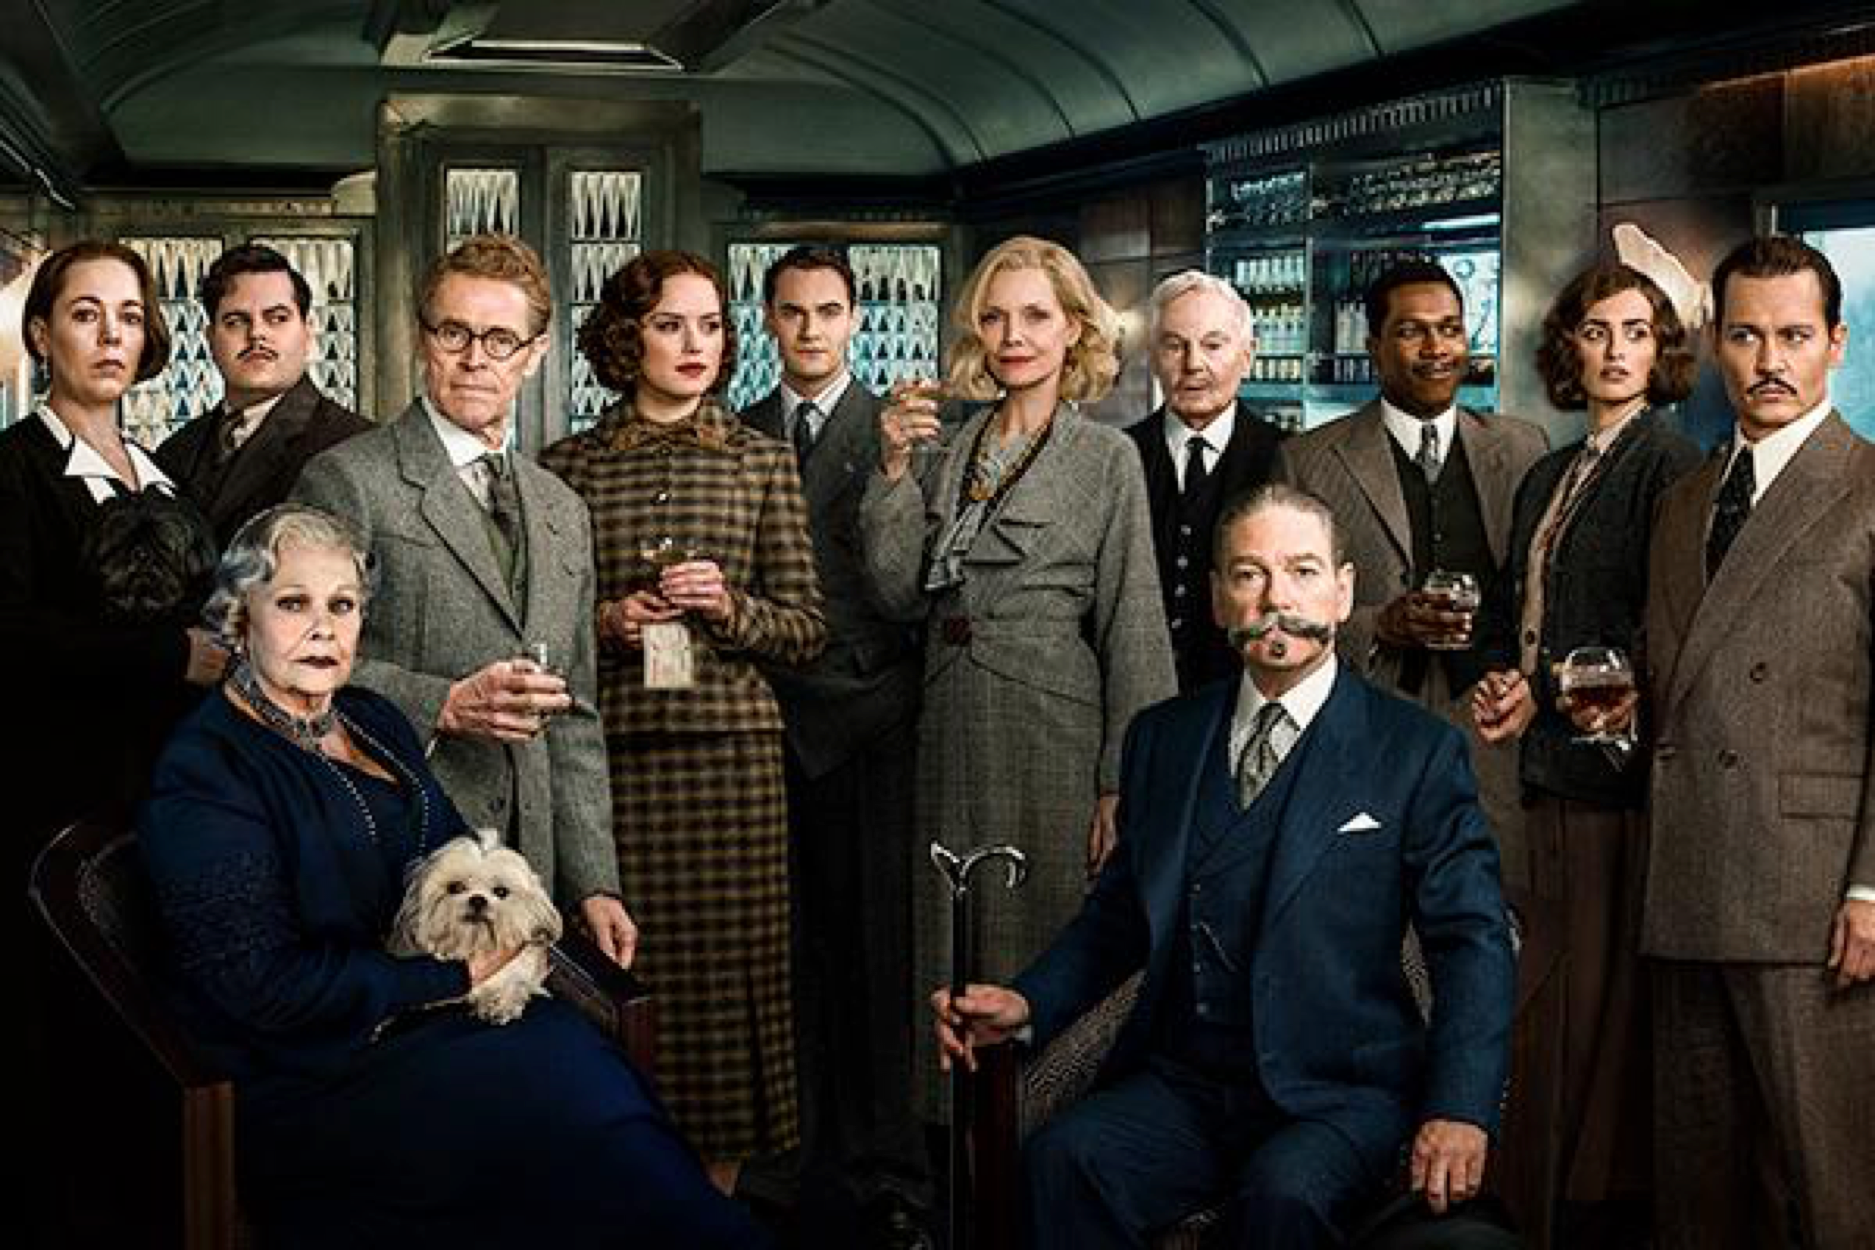 Murder on the Orient Express group